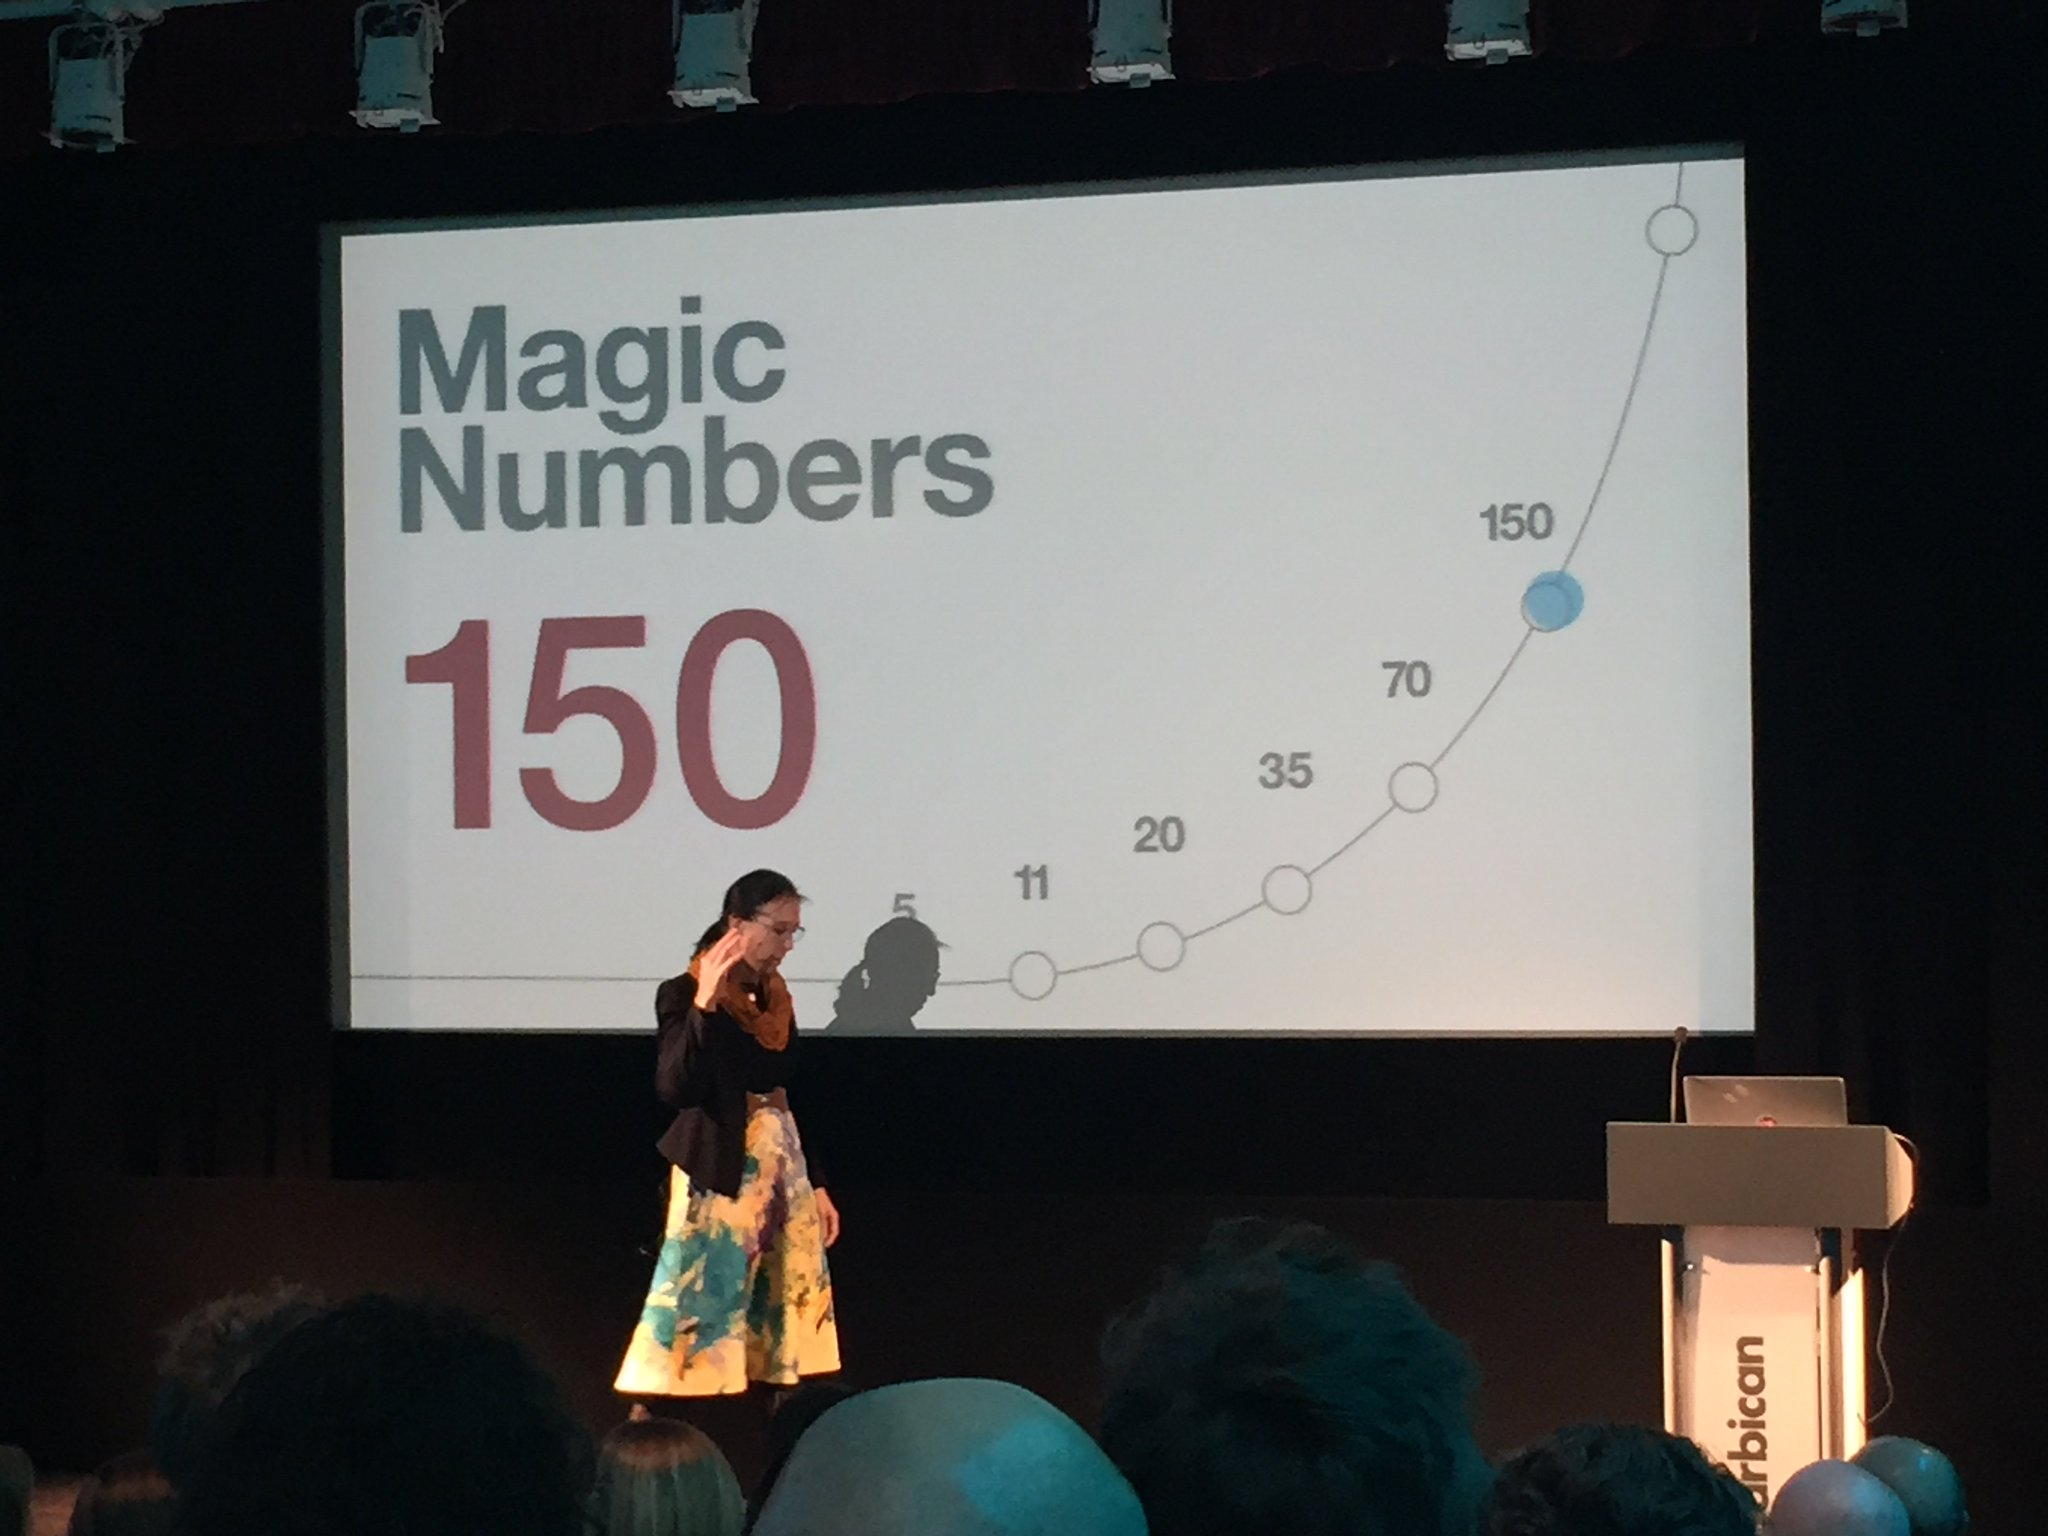 Great thoughts on design studio at scale from @sarahbeee #ldconf - numbers to keep in mind. https://t.co/4PwqnDRMPX